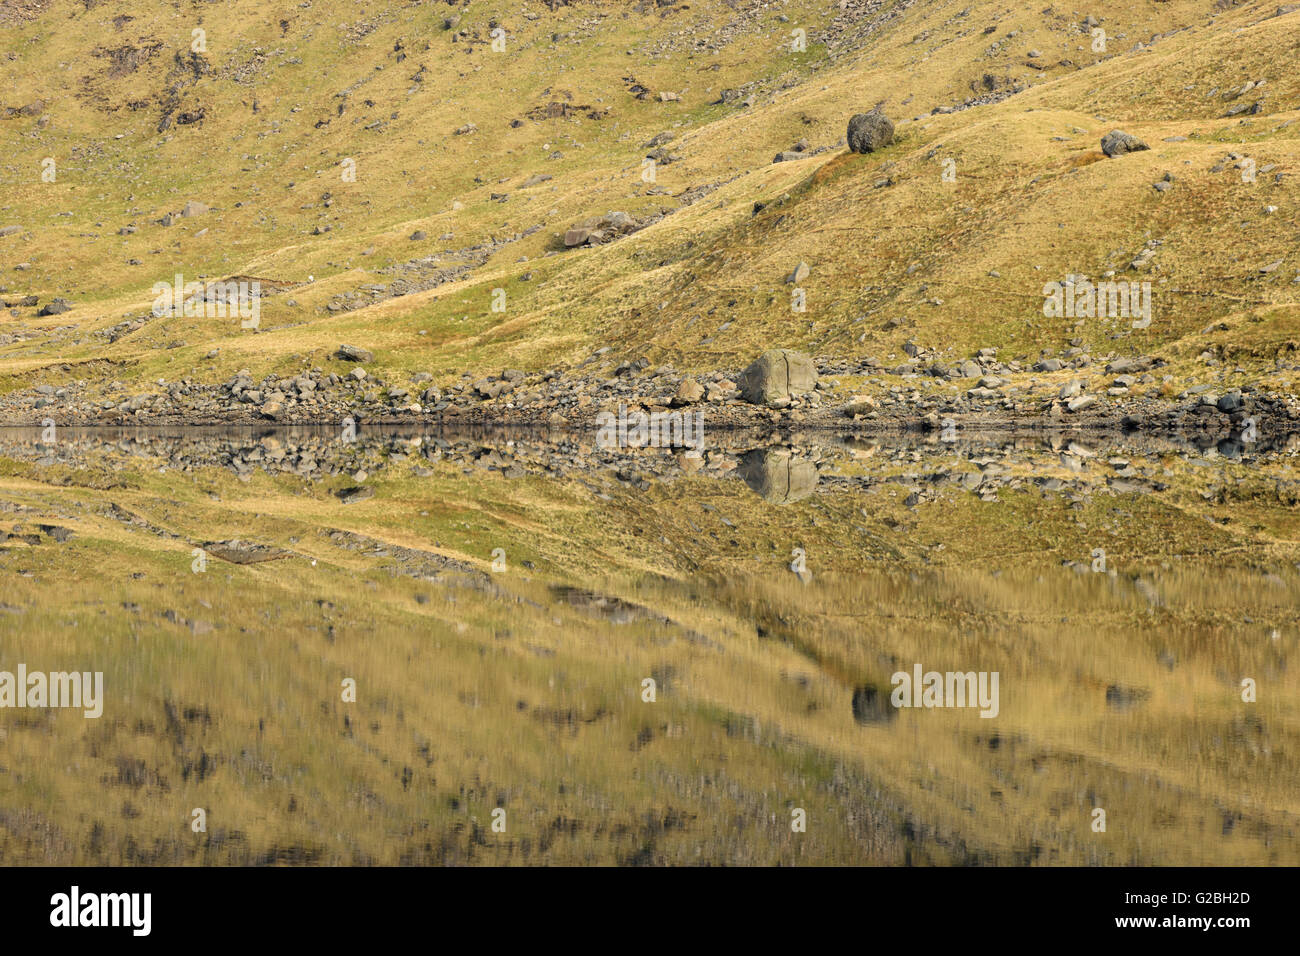 Abstract patterns created by mountainsides reflected in Llyn Llydaw, Snowdonia. - Stock Image